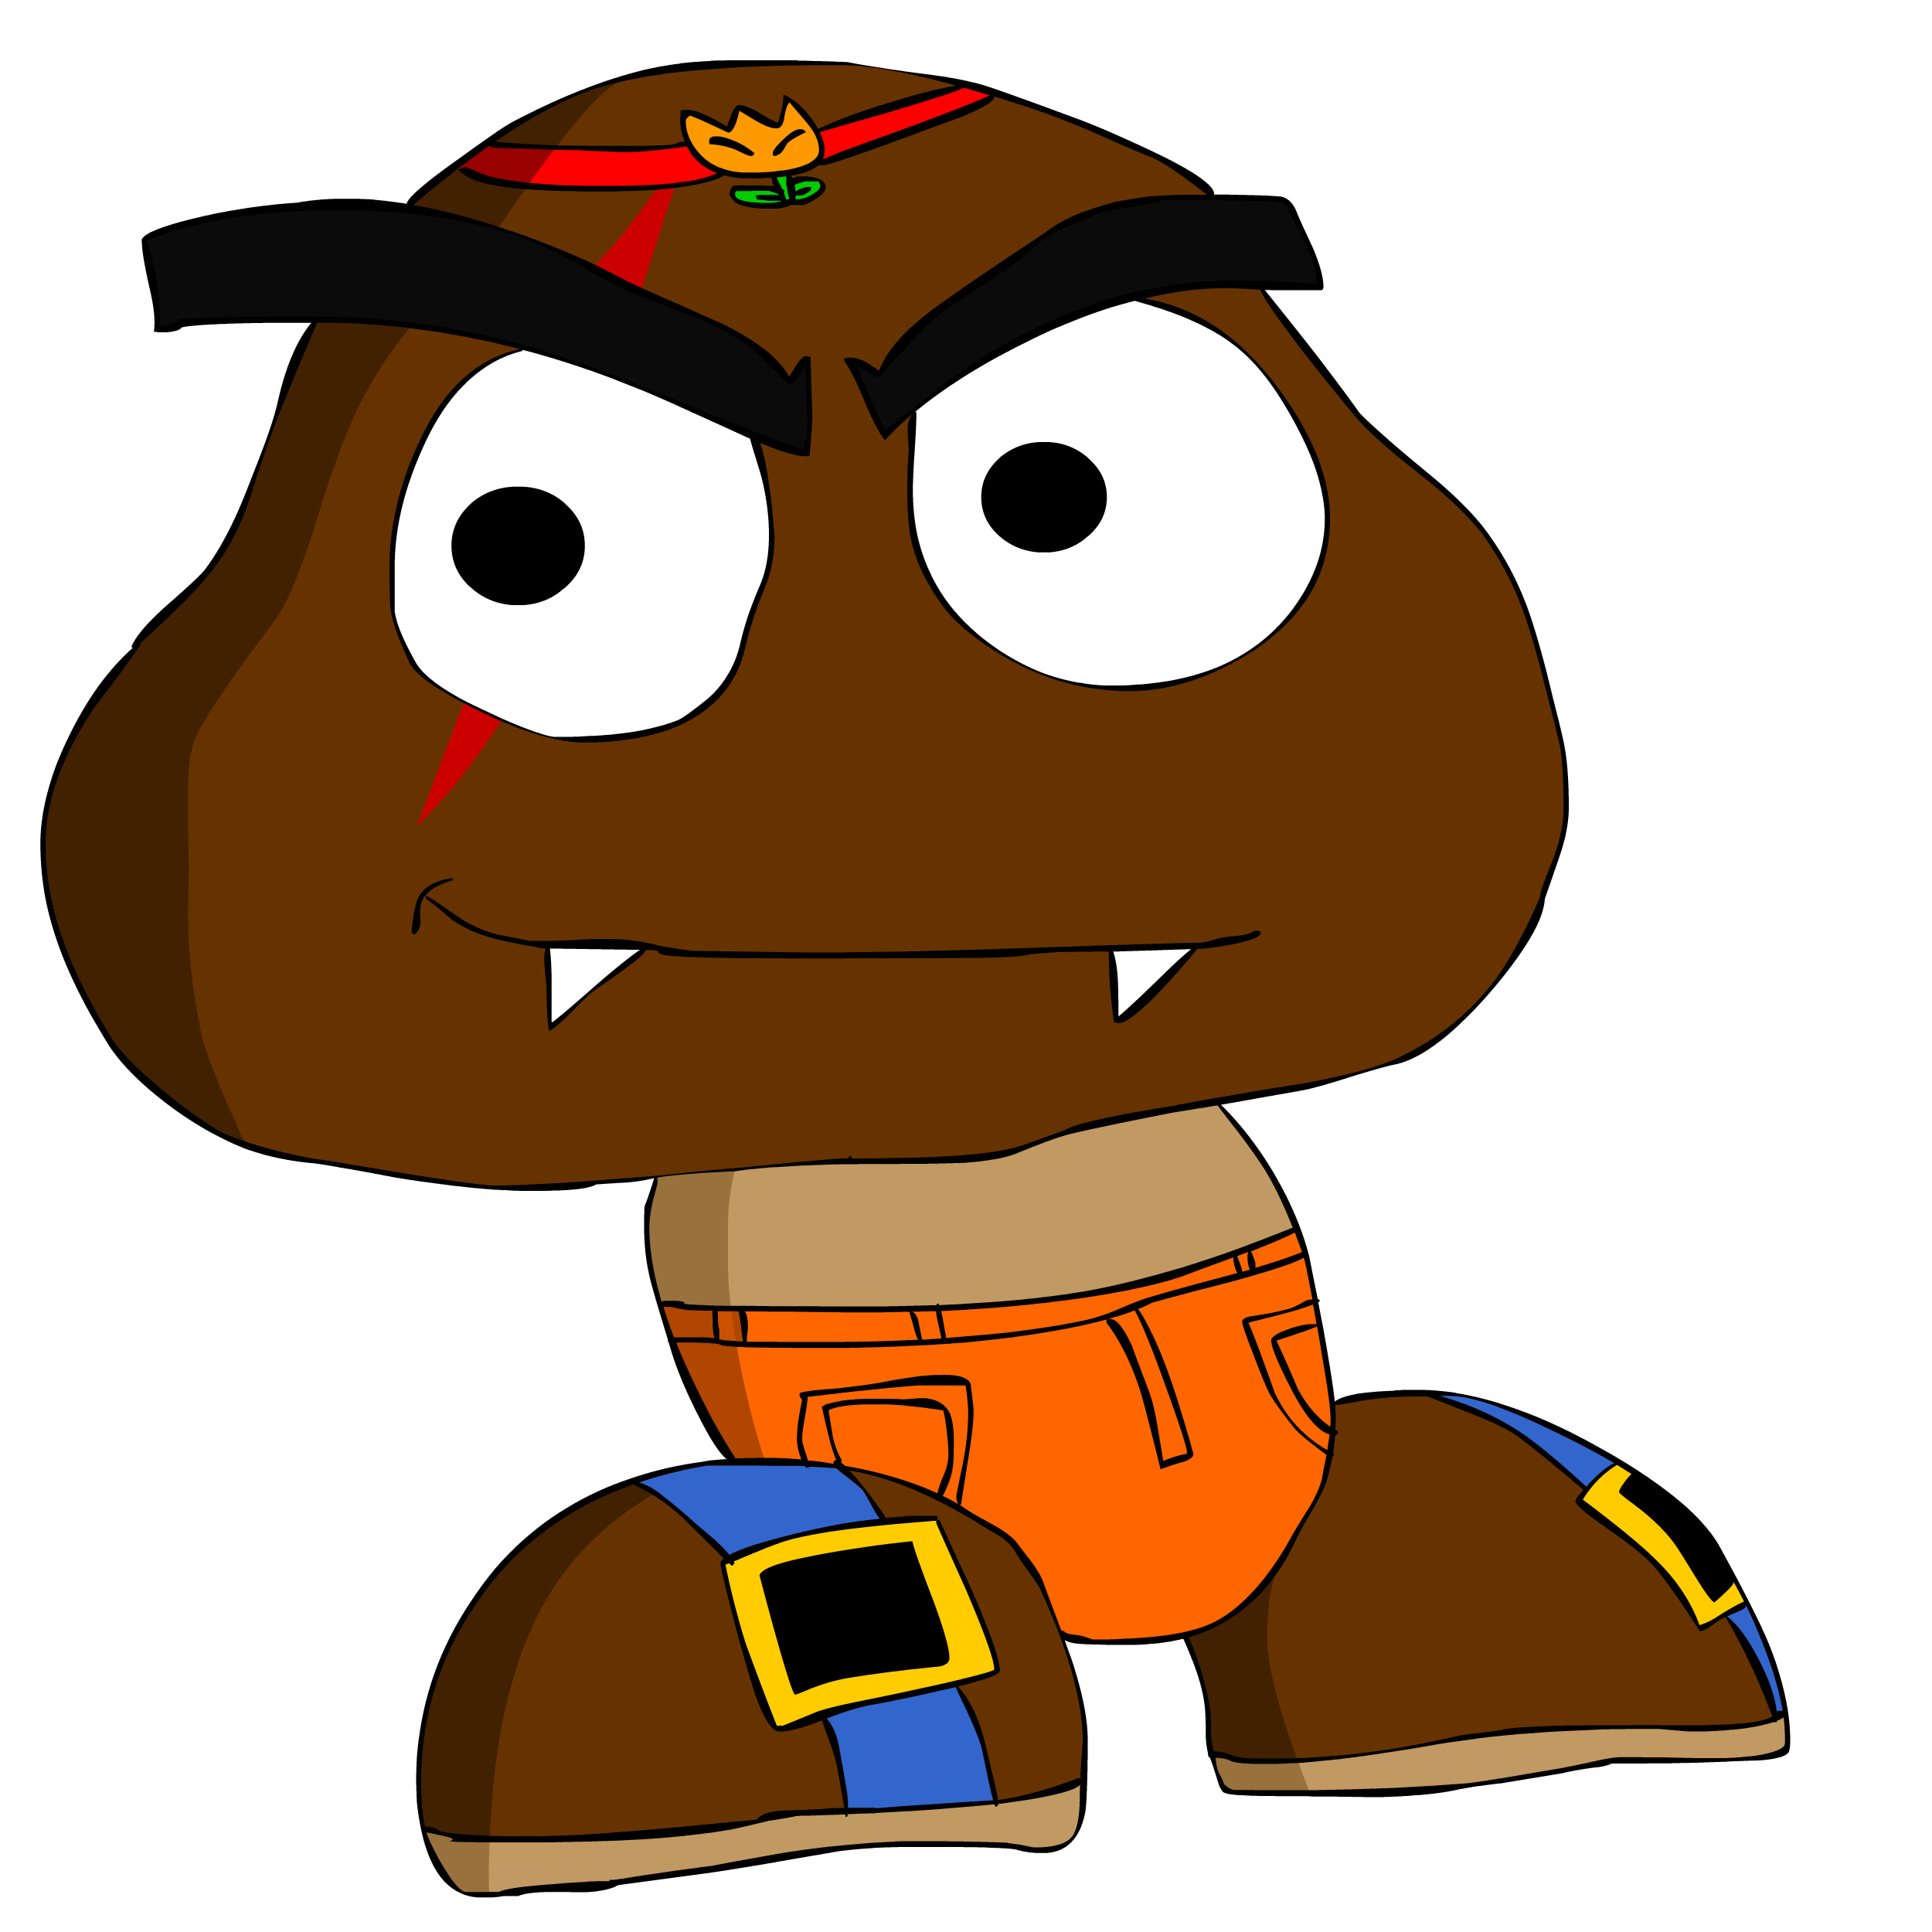 Tony Goomba An Friend Of Mario Bros By Asylusgoji91 On Deviantart